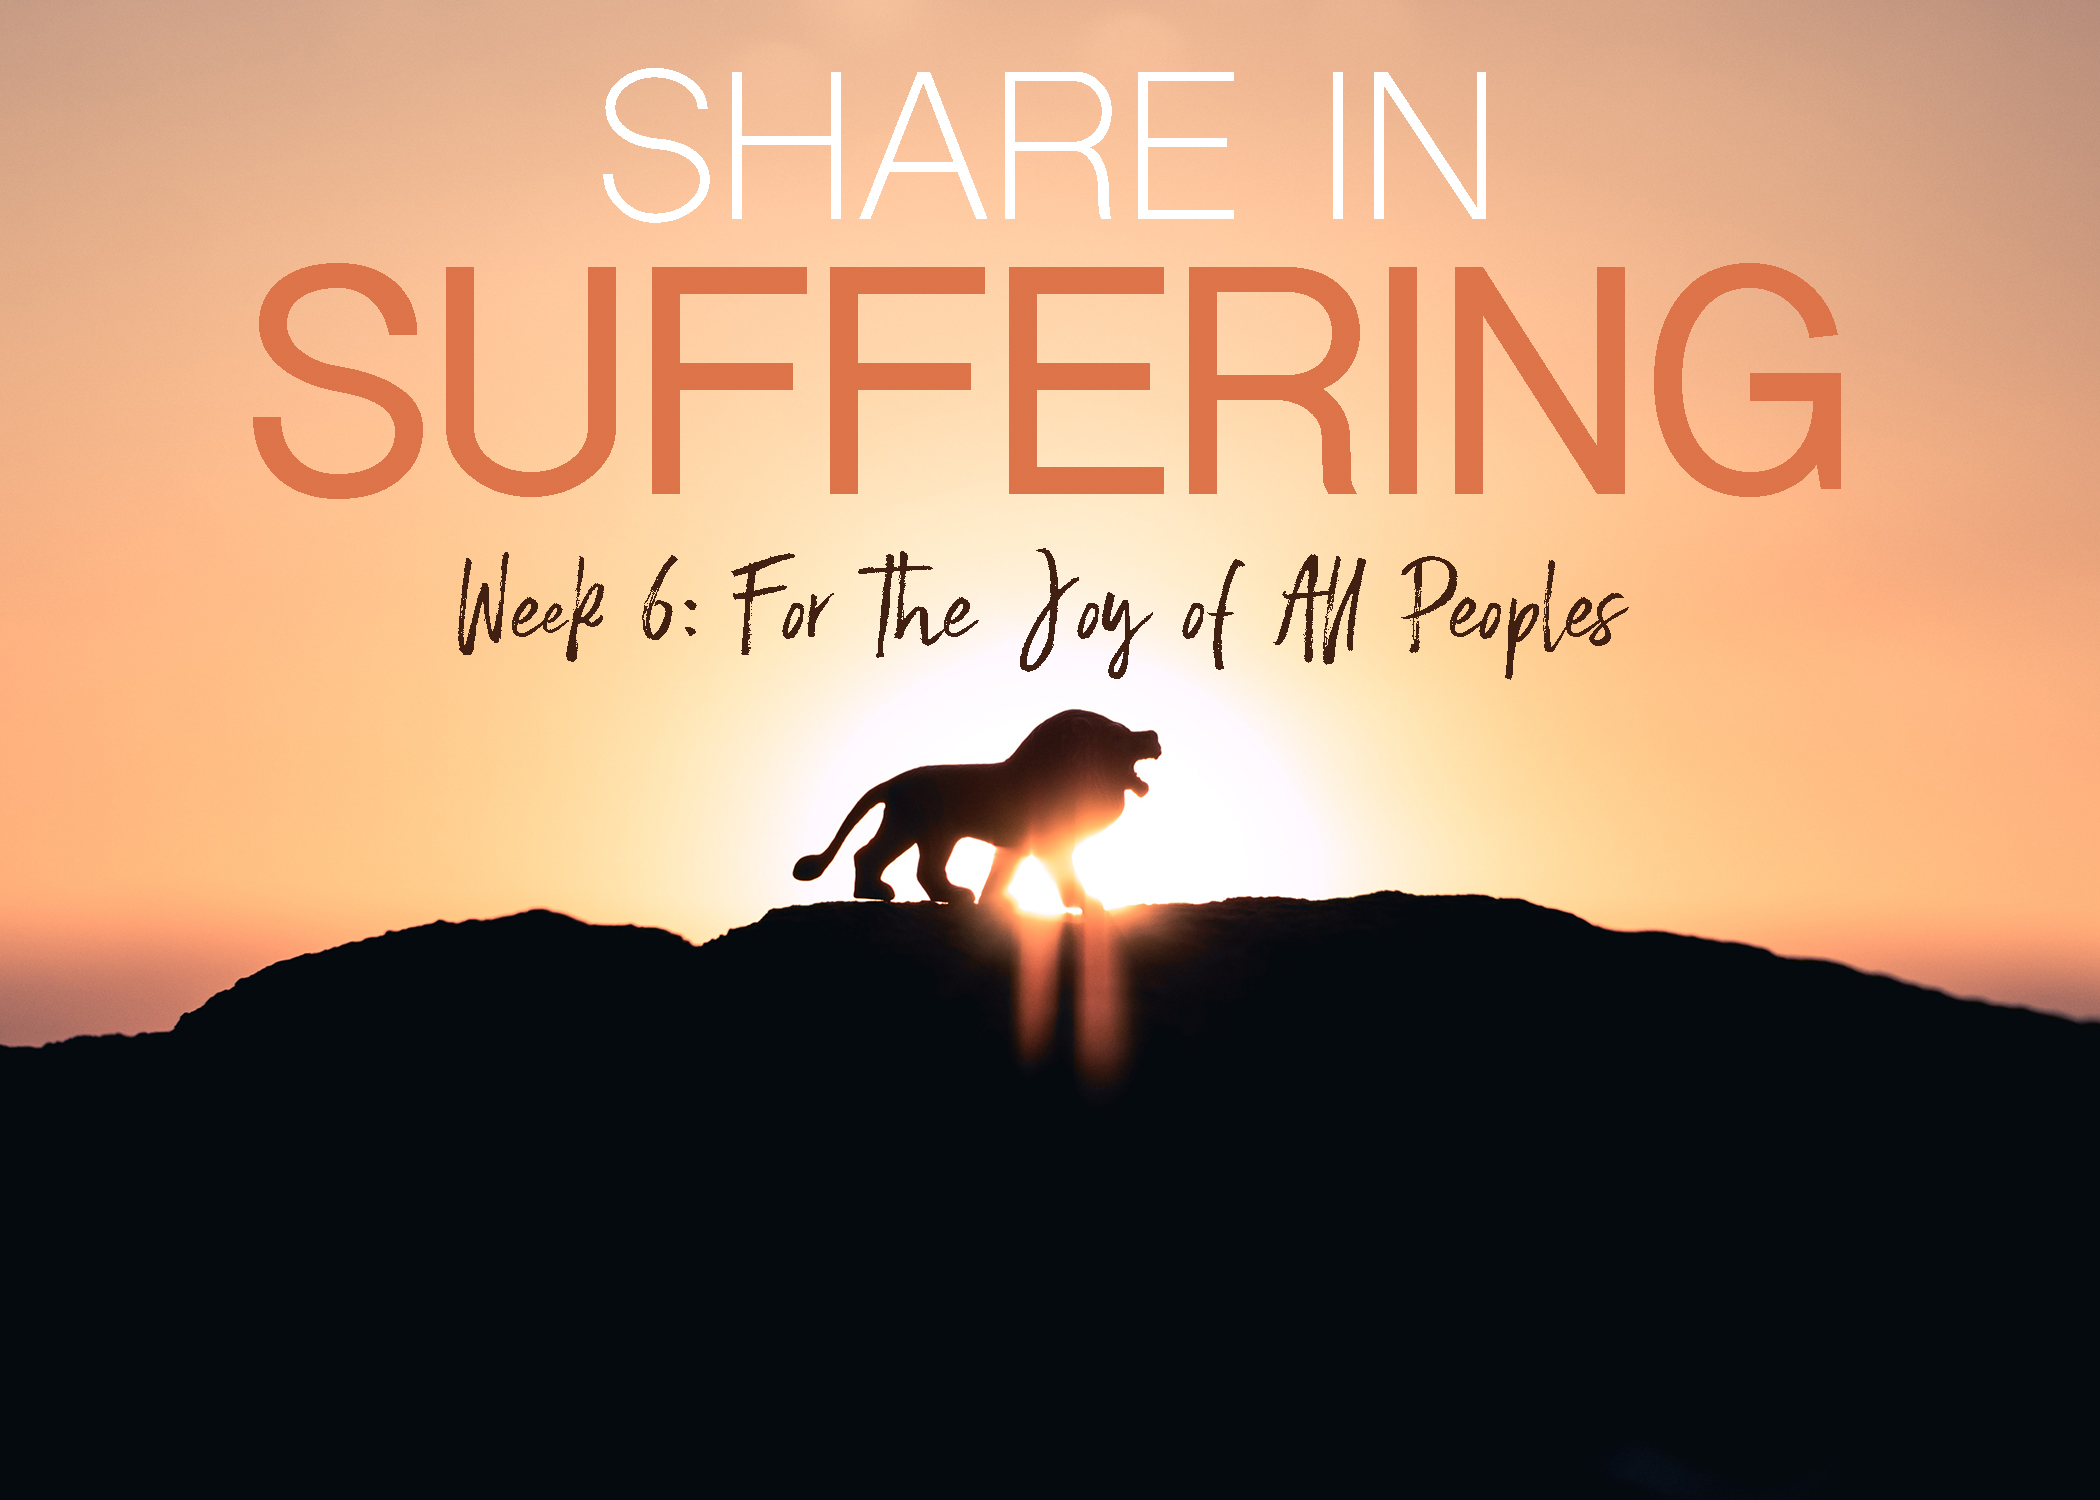 Share in Suffering Week 6.jpg